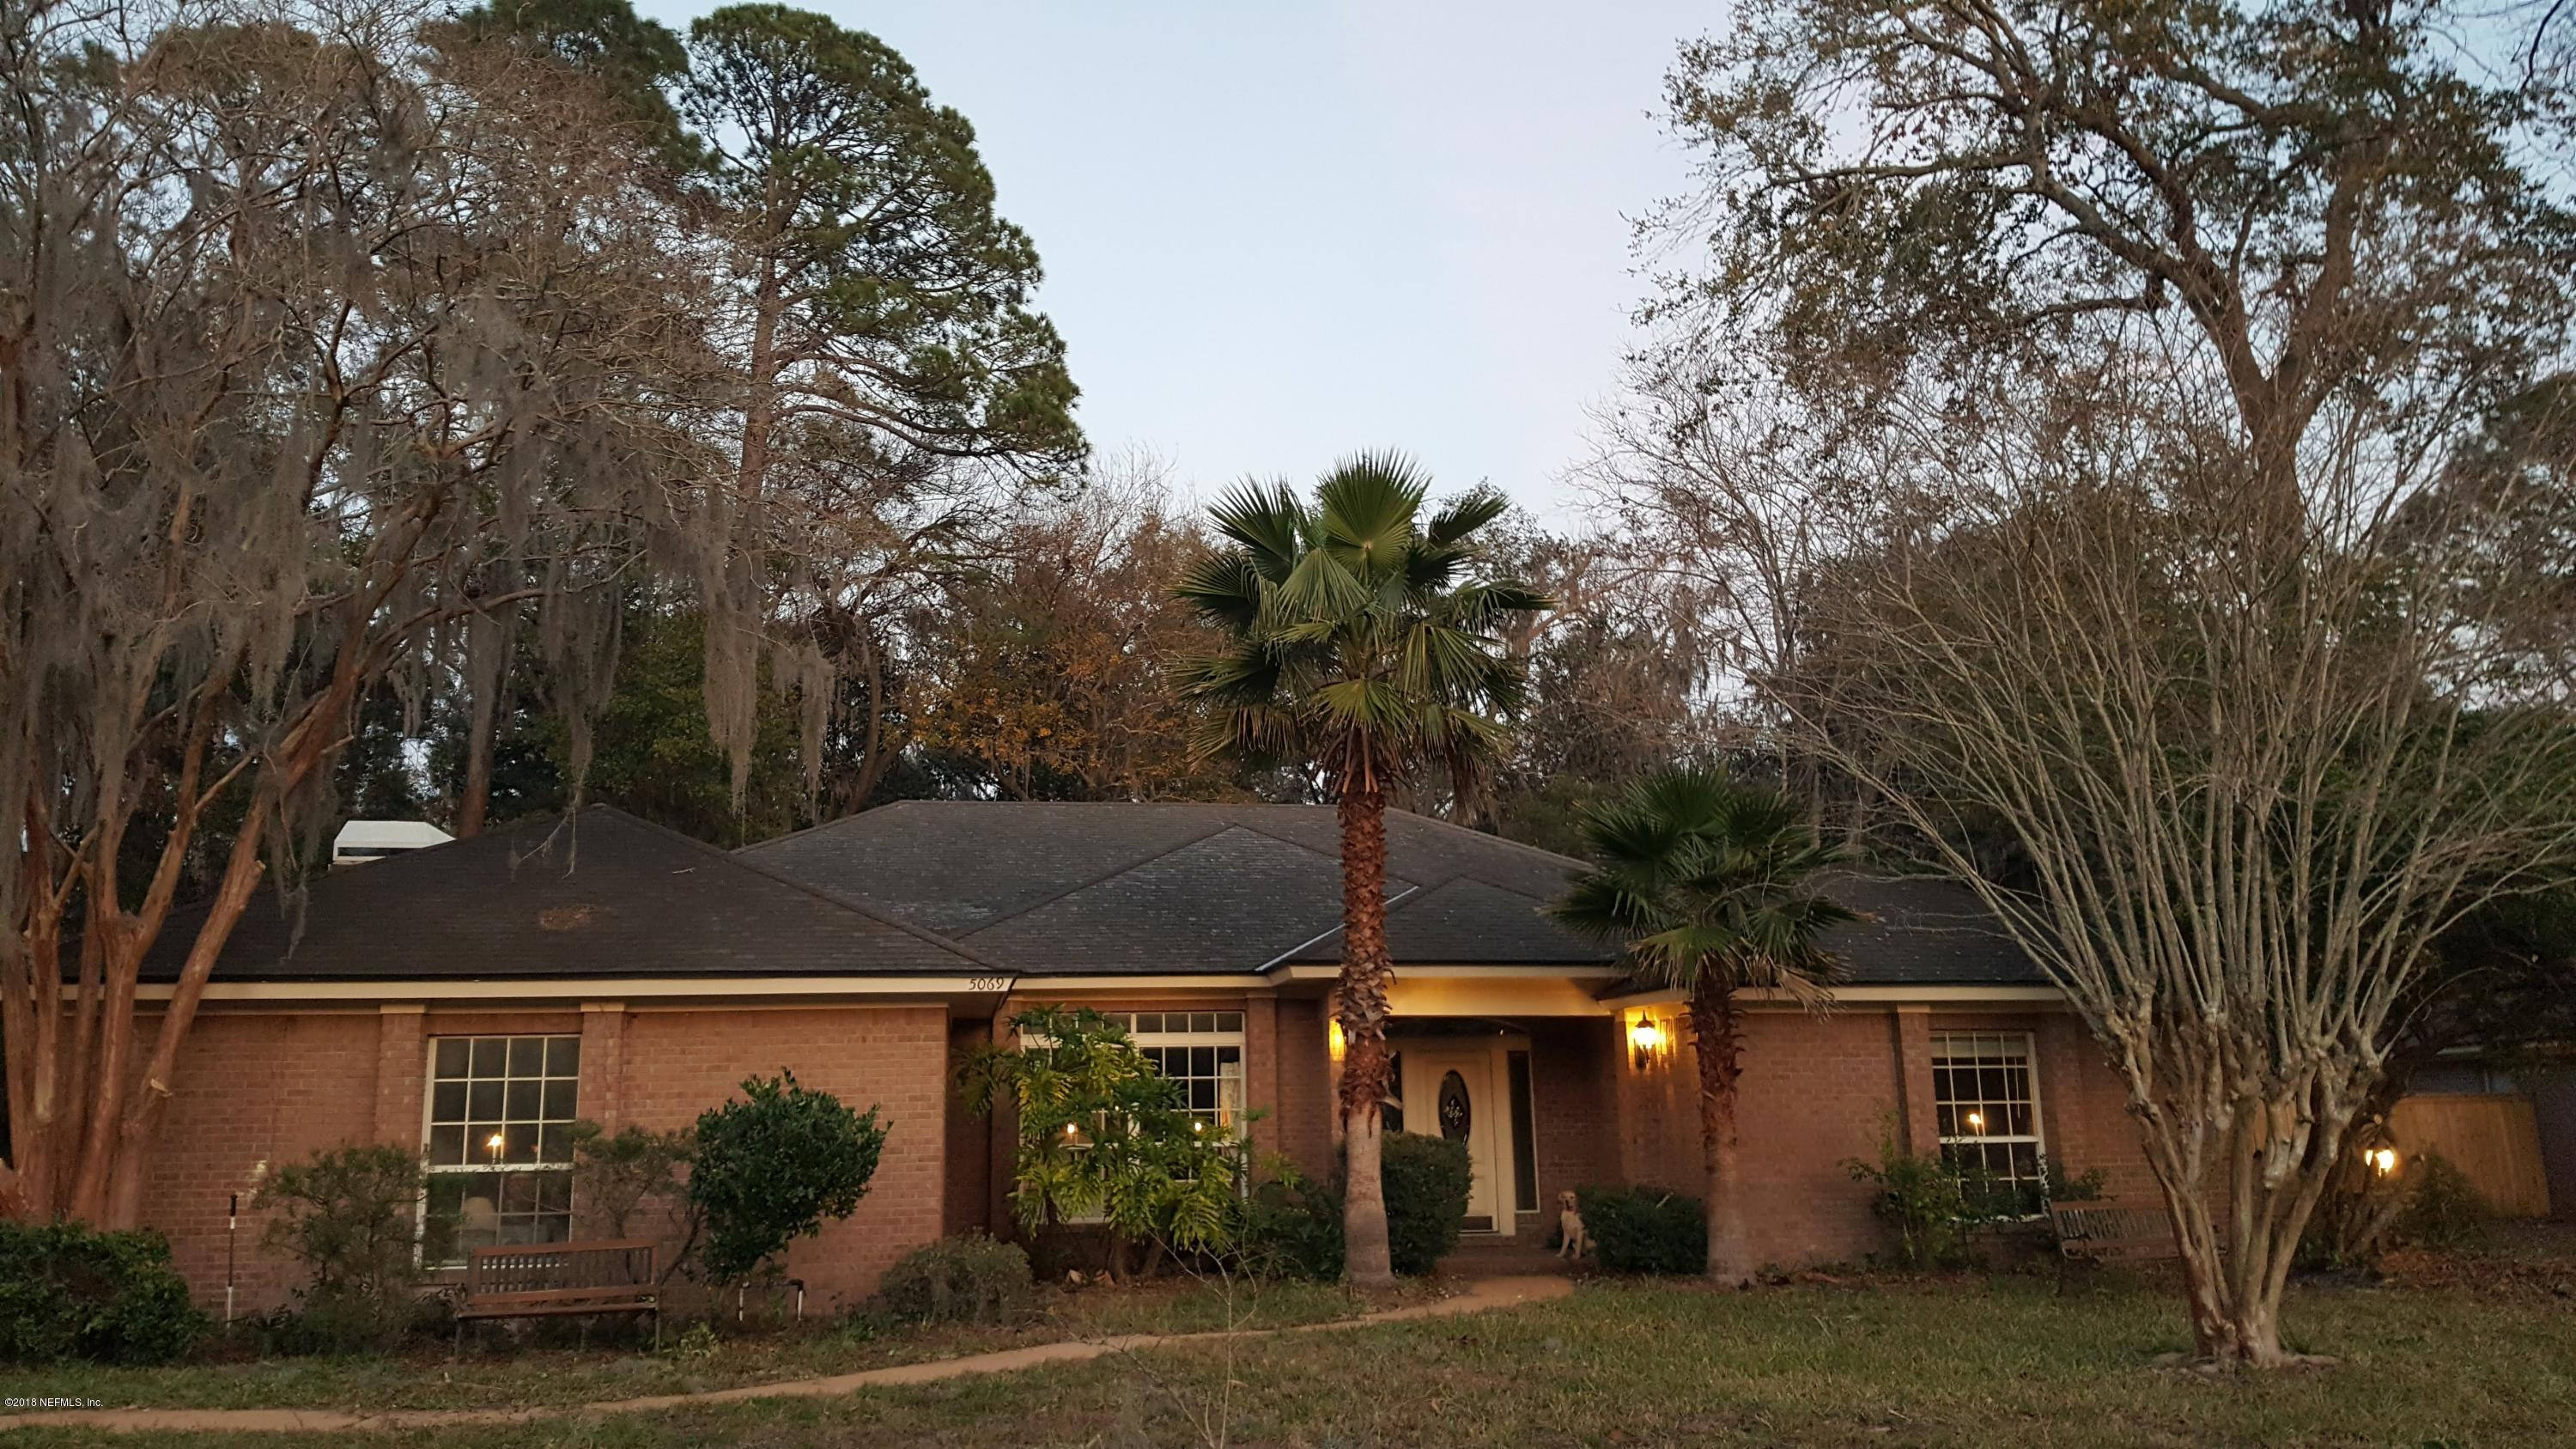 5069 TOPROYAL, JACKSONVILLE, FLORIDA 32277, 4 Bedrooms Bedrooms, ,2 BathroomsBathrooms,Residential - single family,For sale,TOPROYAL,949835